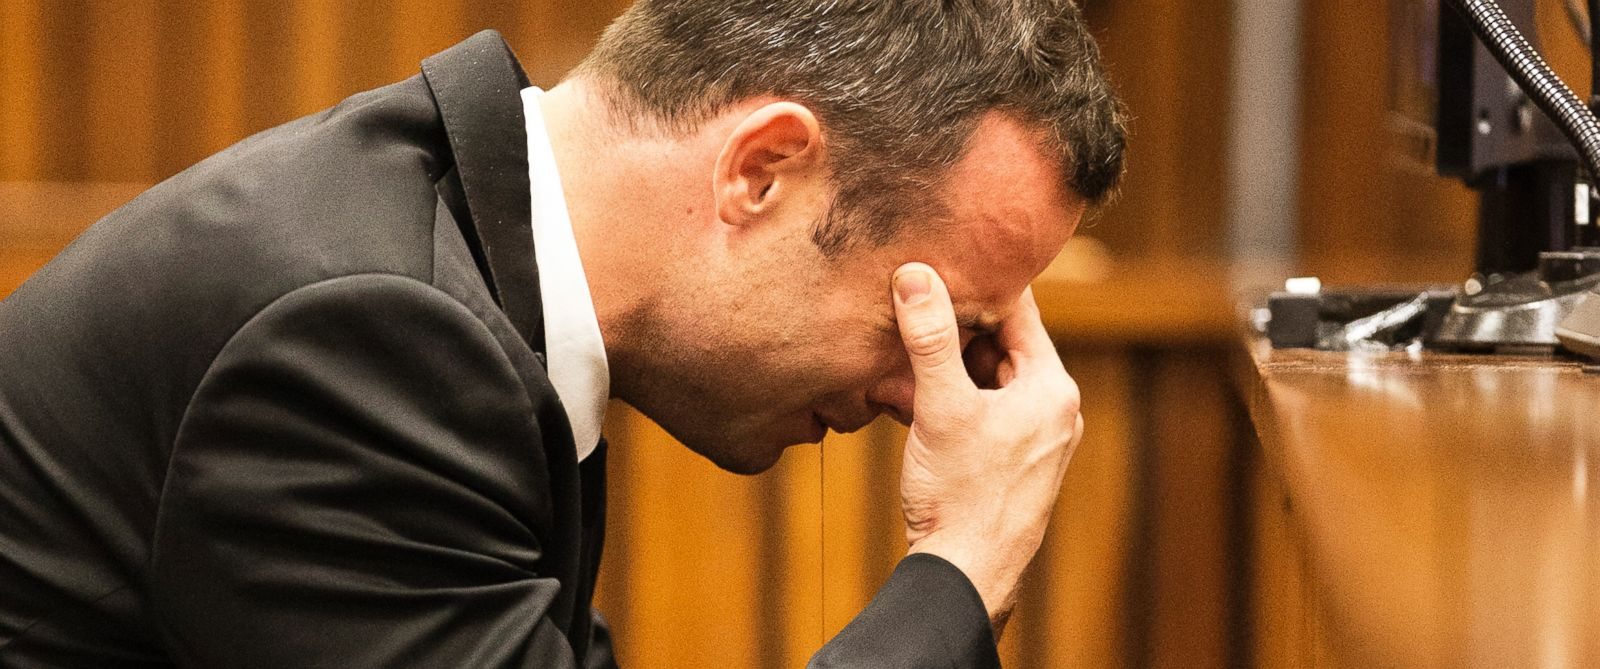 PHOTO: Oscar Pistorius puts his hand to his face while listening to evidence from a witness speaking about the morning of the shooting in court on the fourth day of his trial at the high court in Pretoria, South Africa, March 6, 2014.